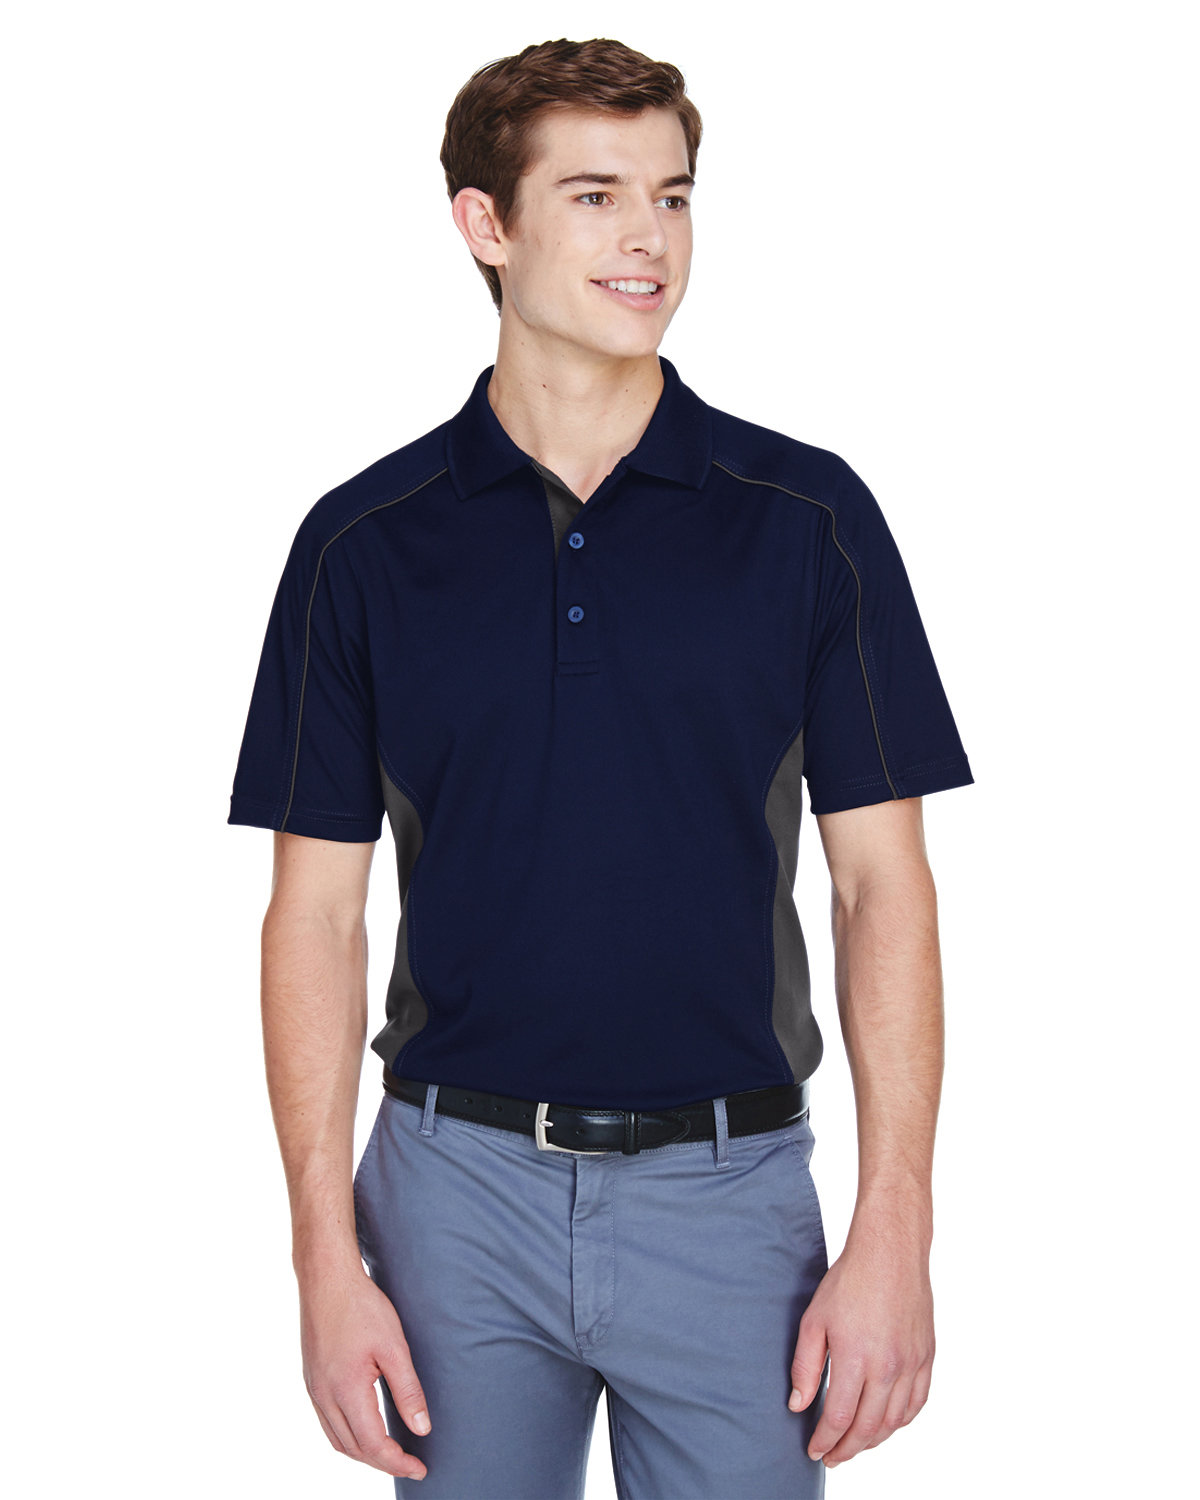 Extreme Men's Eperformance™ Fuse Snag Protection Plus Colorblock Polo CLASC NAVY/ CRBN